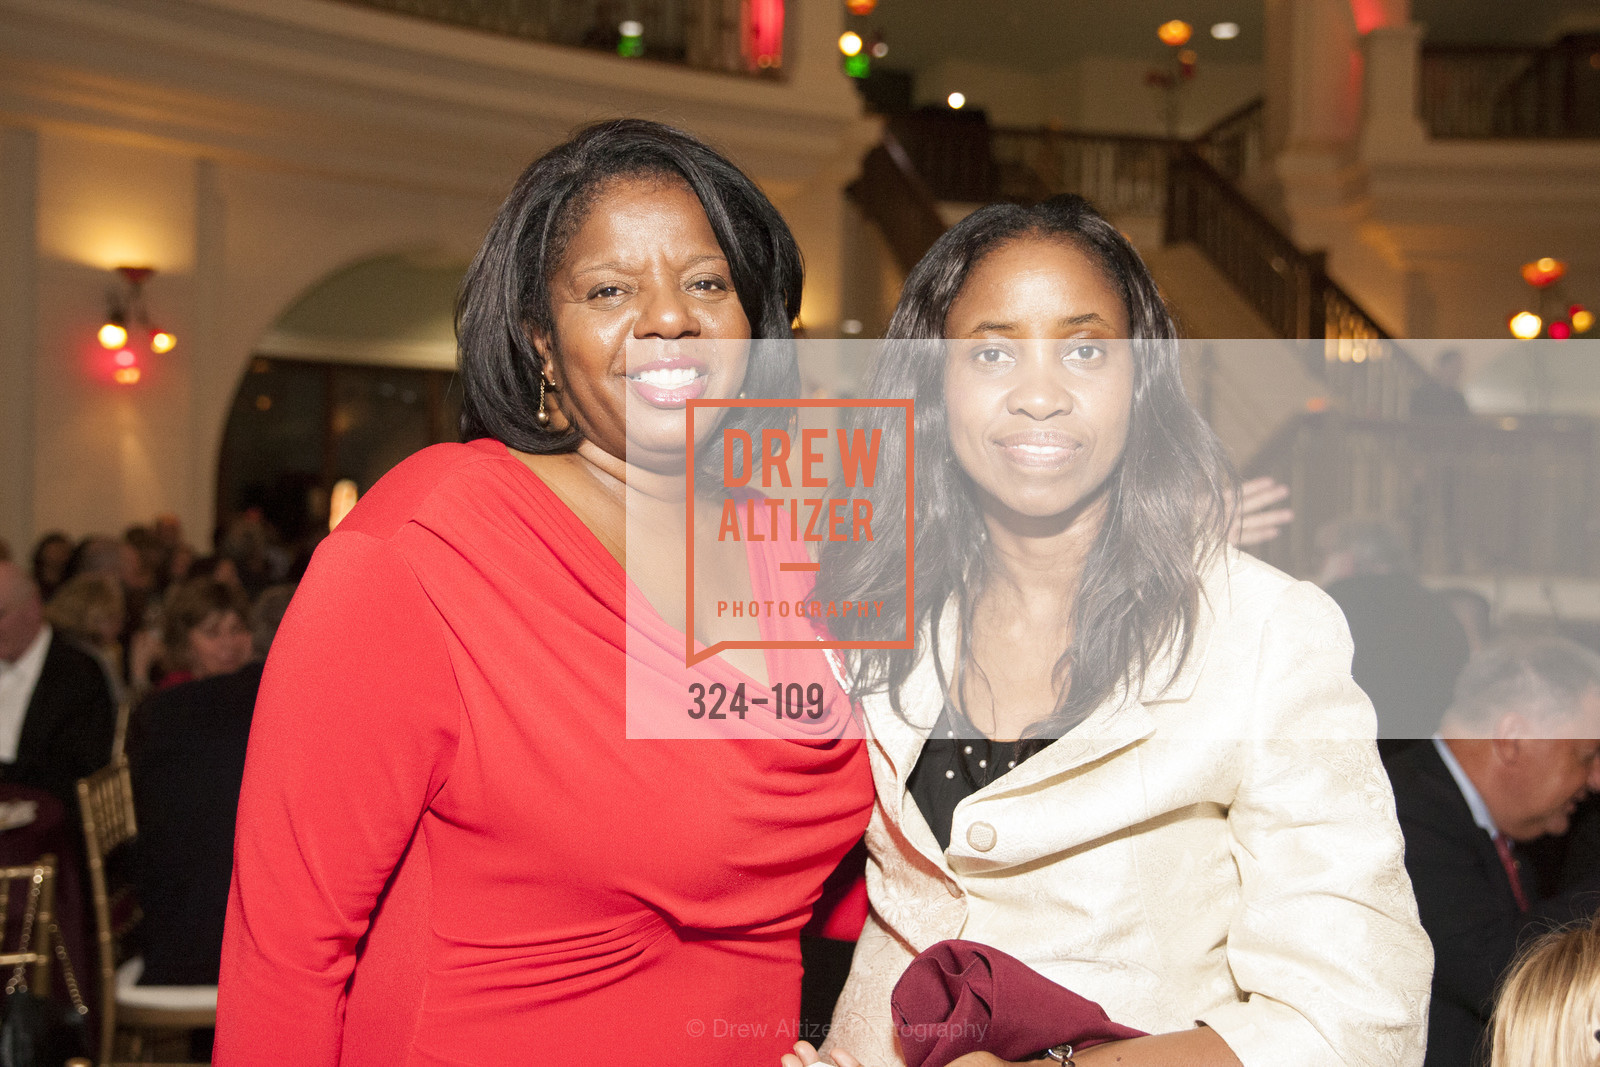 Kathy Adams, TsiTsi Appollo, PANGAEA GLOBAL HEALTH Leadership Dinner at Rotunda in Oakland, The Rotunda. Oakland, May 11th, 2015,Drew Altizer, Drew Altizer Photography, full-service agency, private events, San Francisco photographer, photographer california